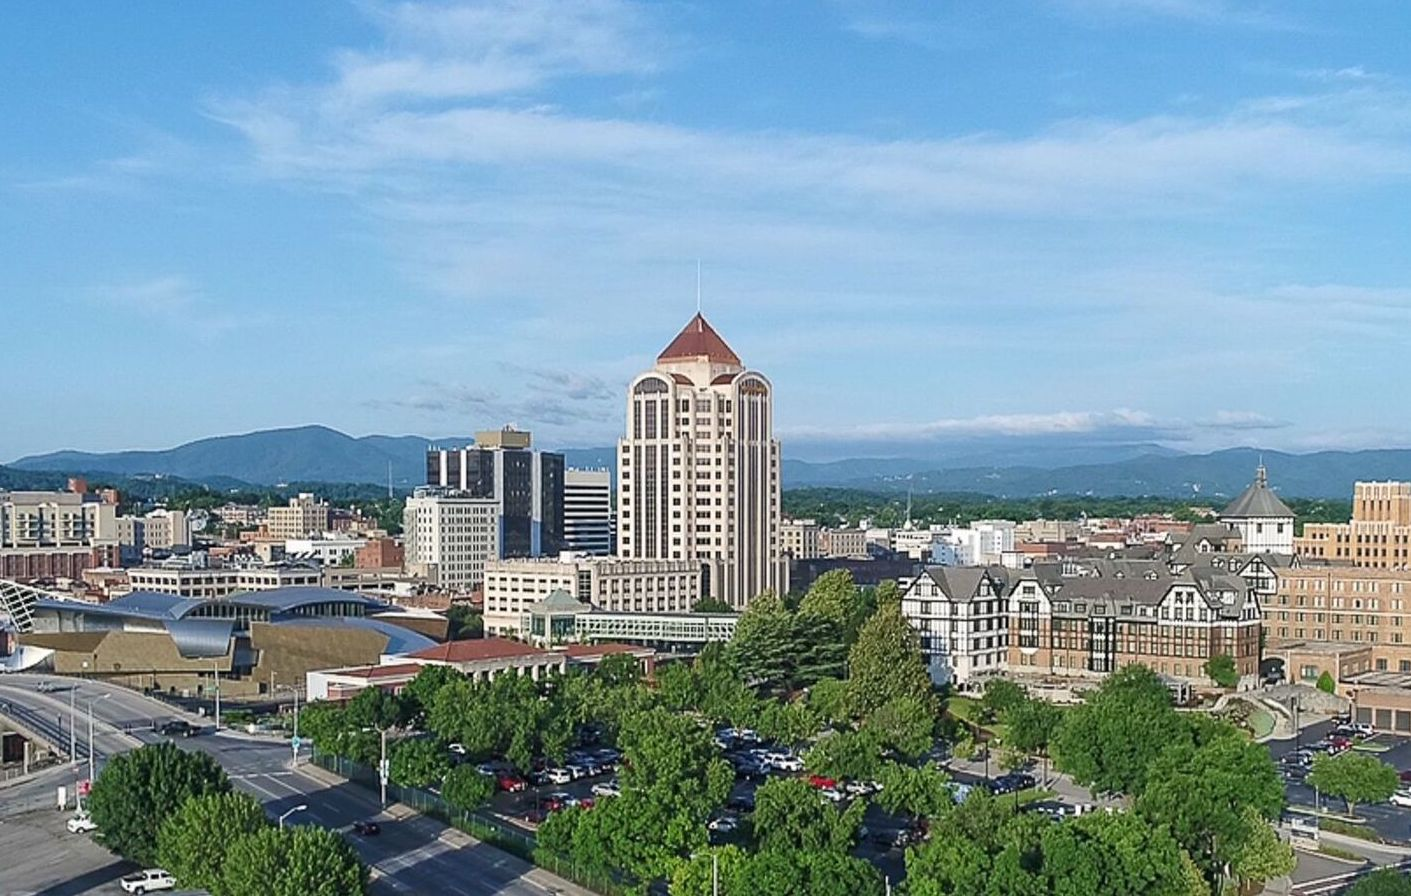 Aerial photo of roanoke